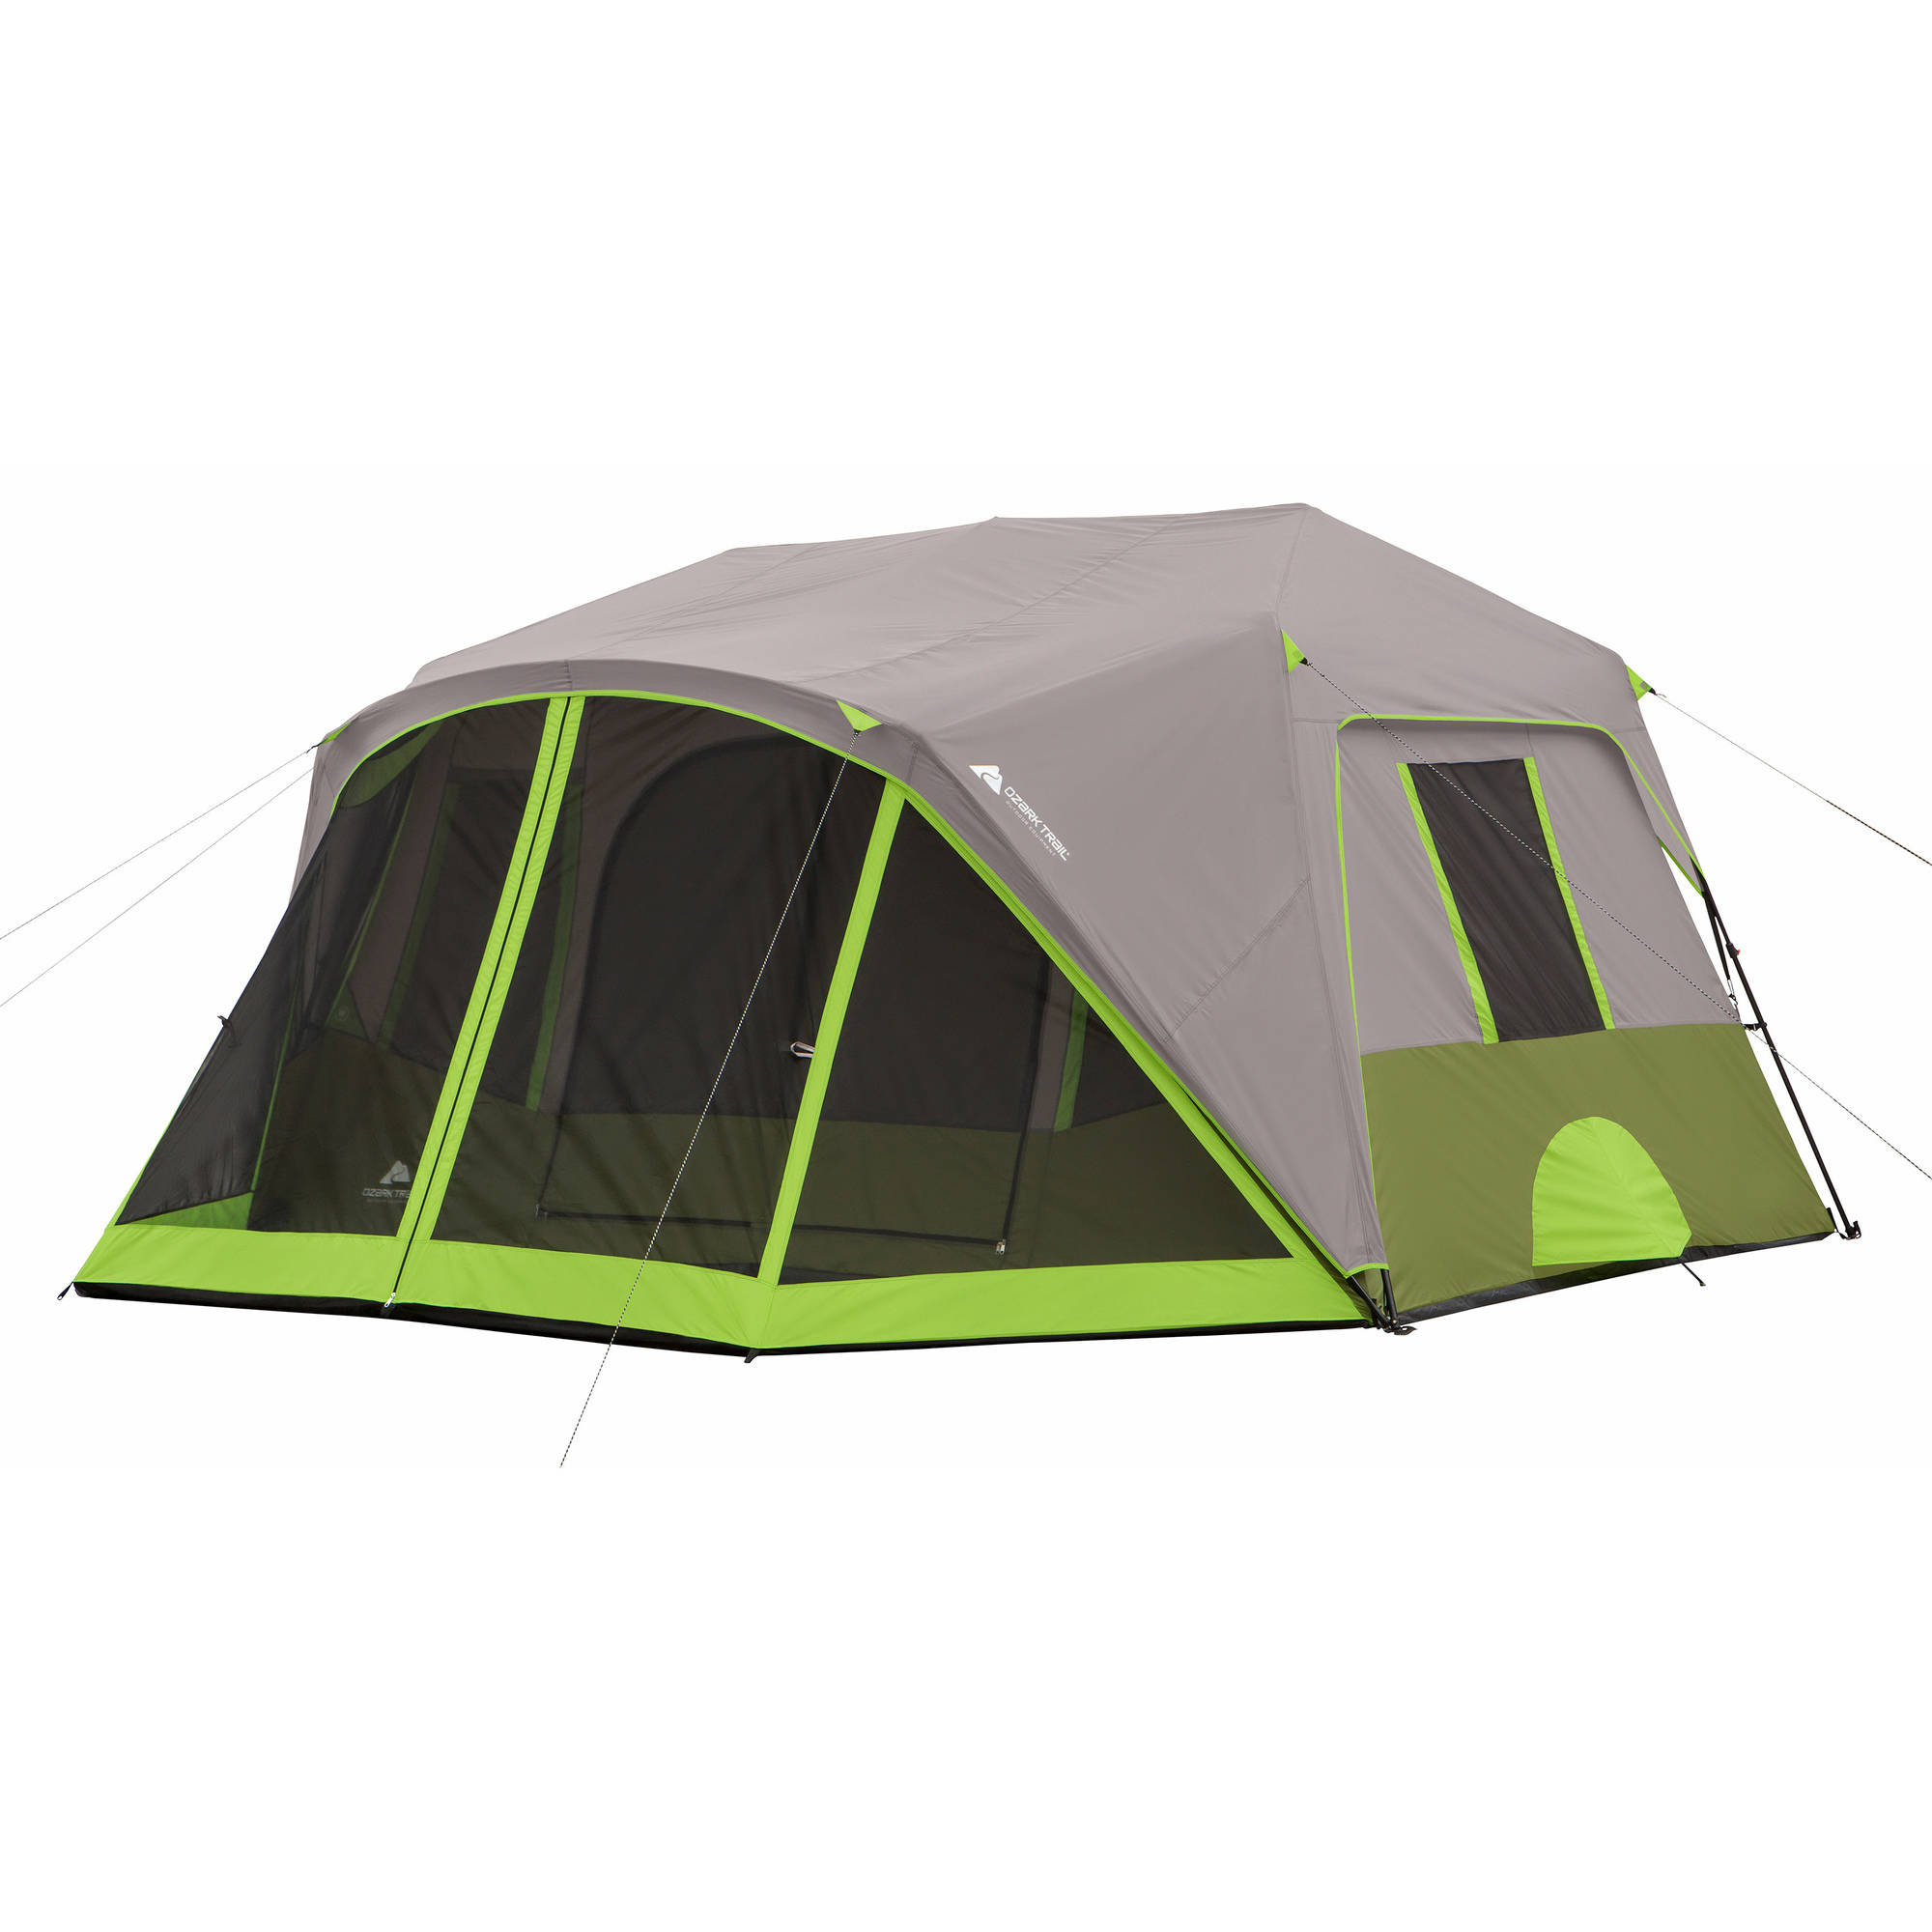 Ozark Trail 9 Person 2 Room Instant Cabin Tent with Screen Room  sc 1 st  Walmart & Ozark Trail 9 Person 2 Room Instant Cabin Tent with Screen Room ...